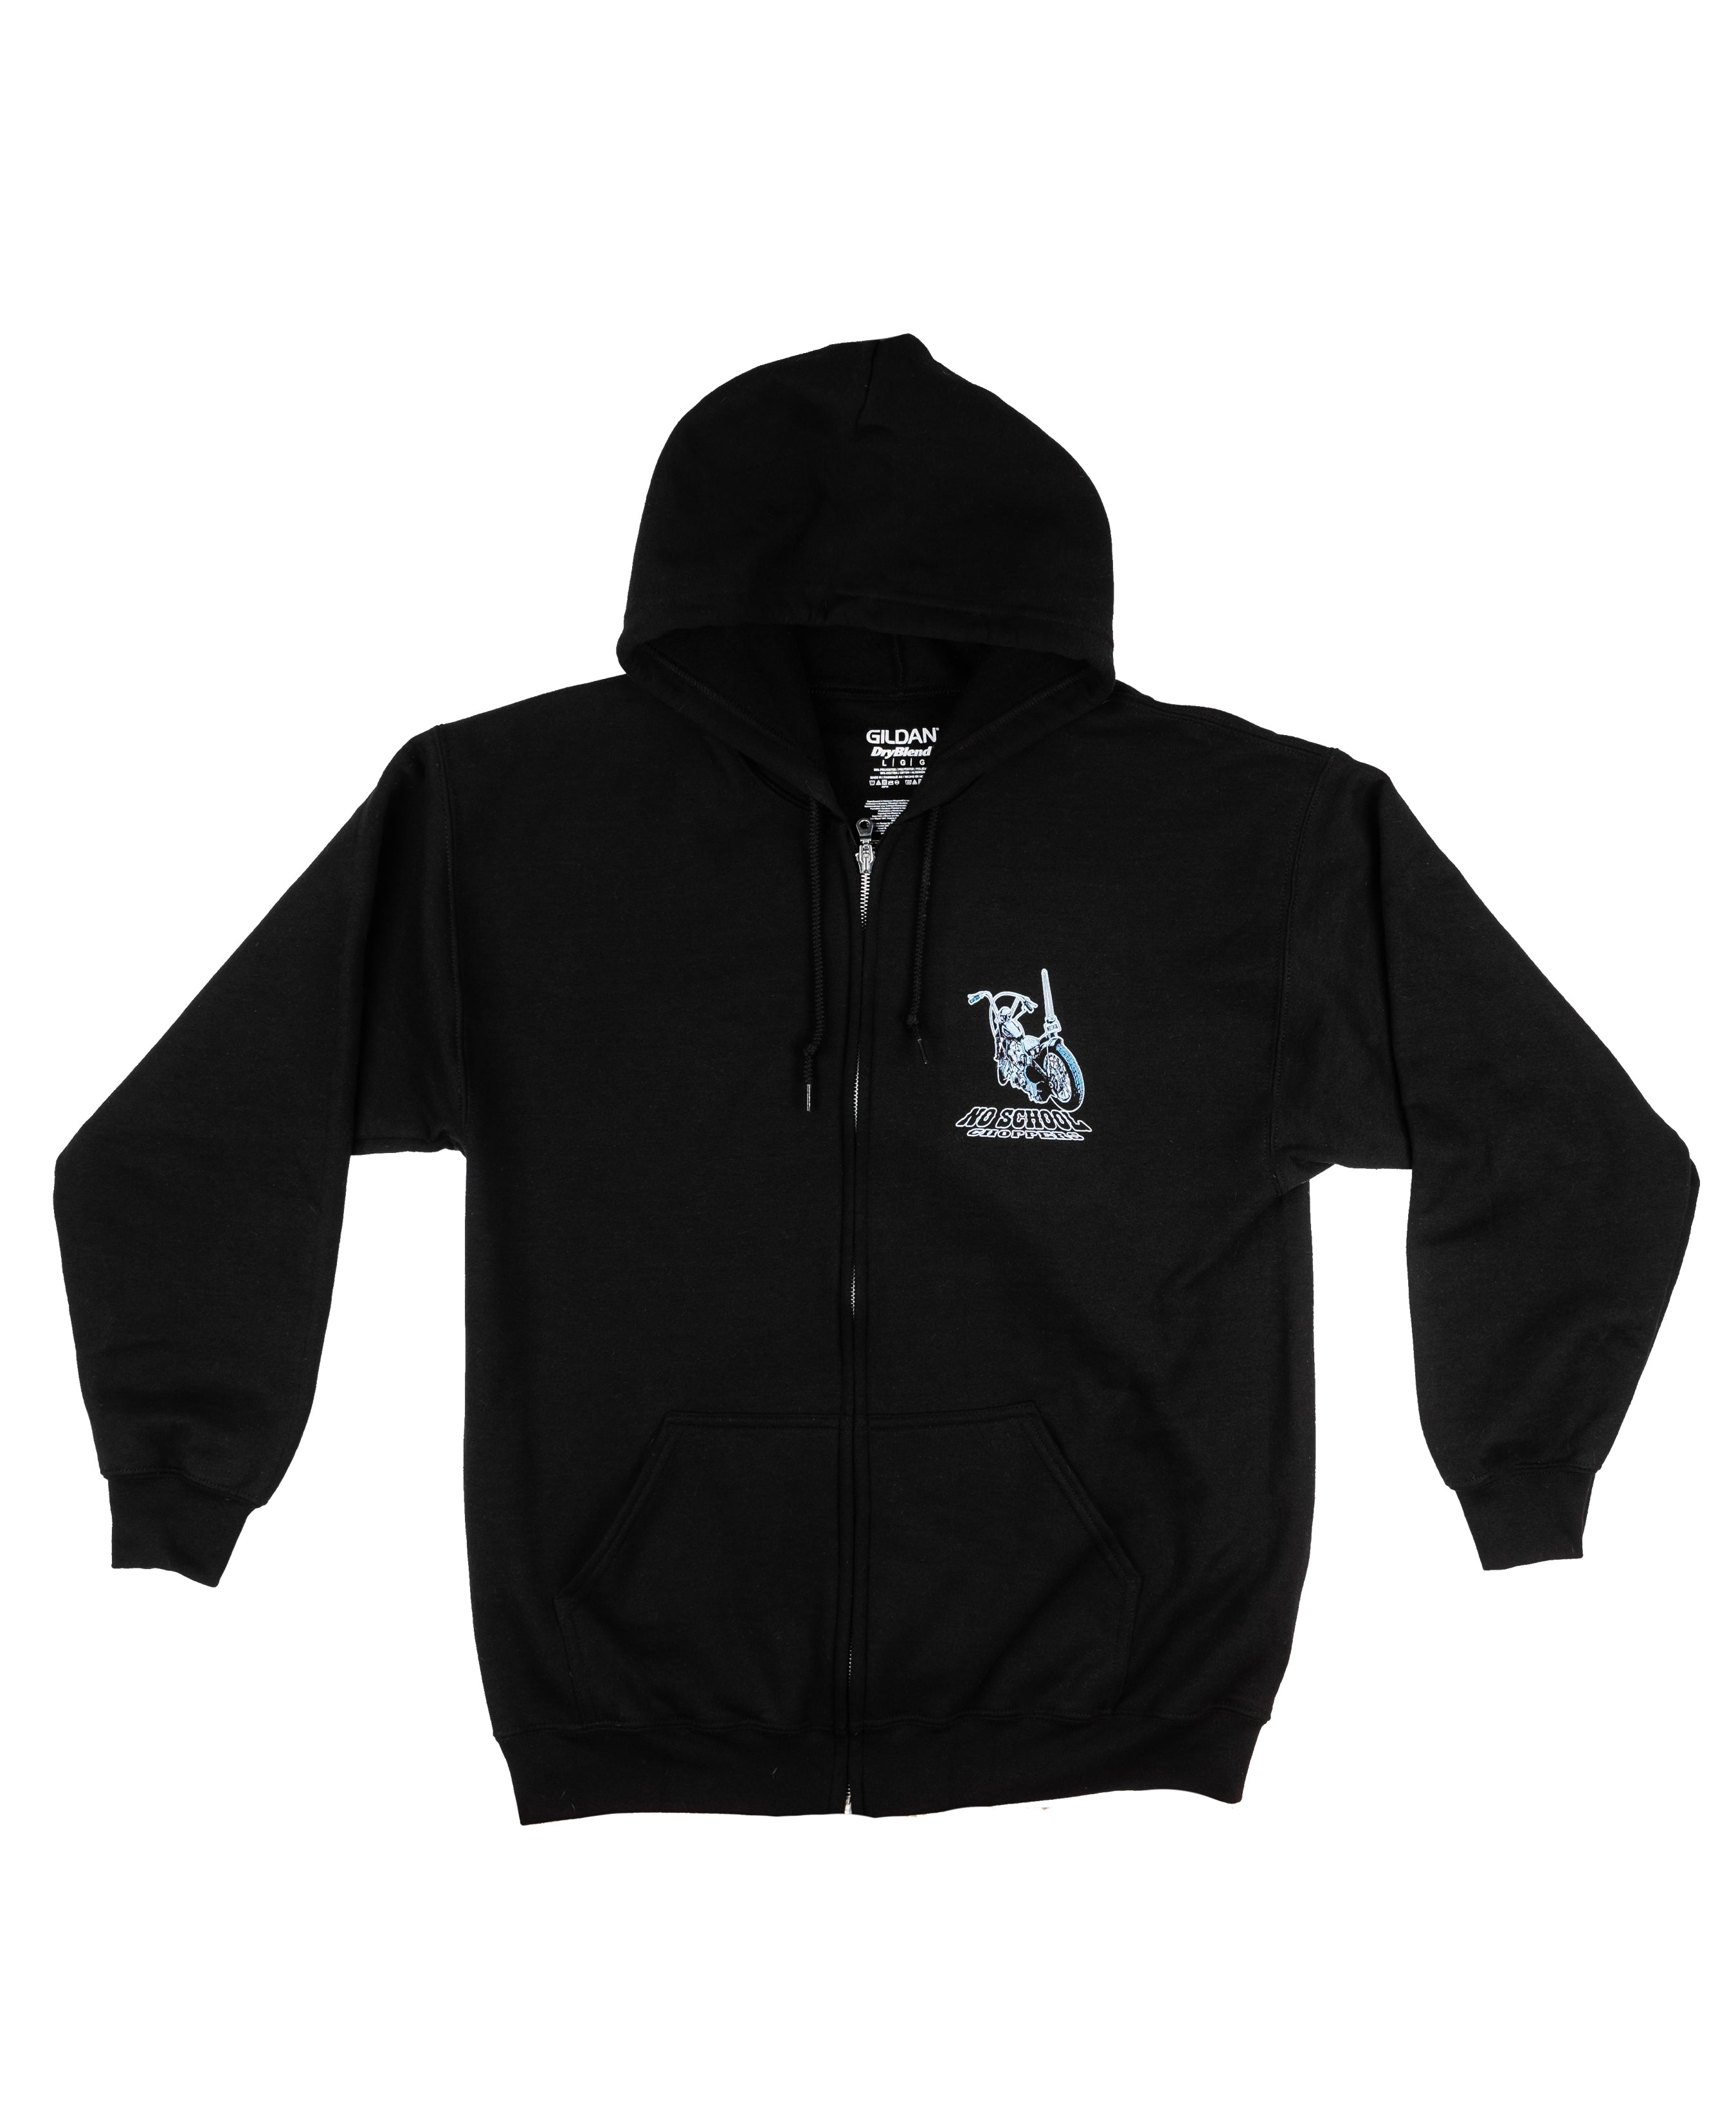 NEW! NSC Camp Out Zip Up Hooded Sweatshirt